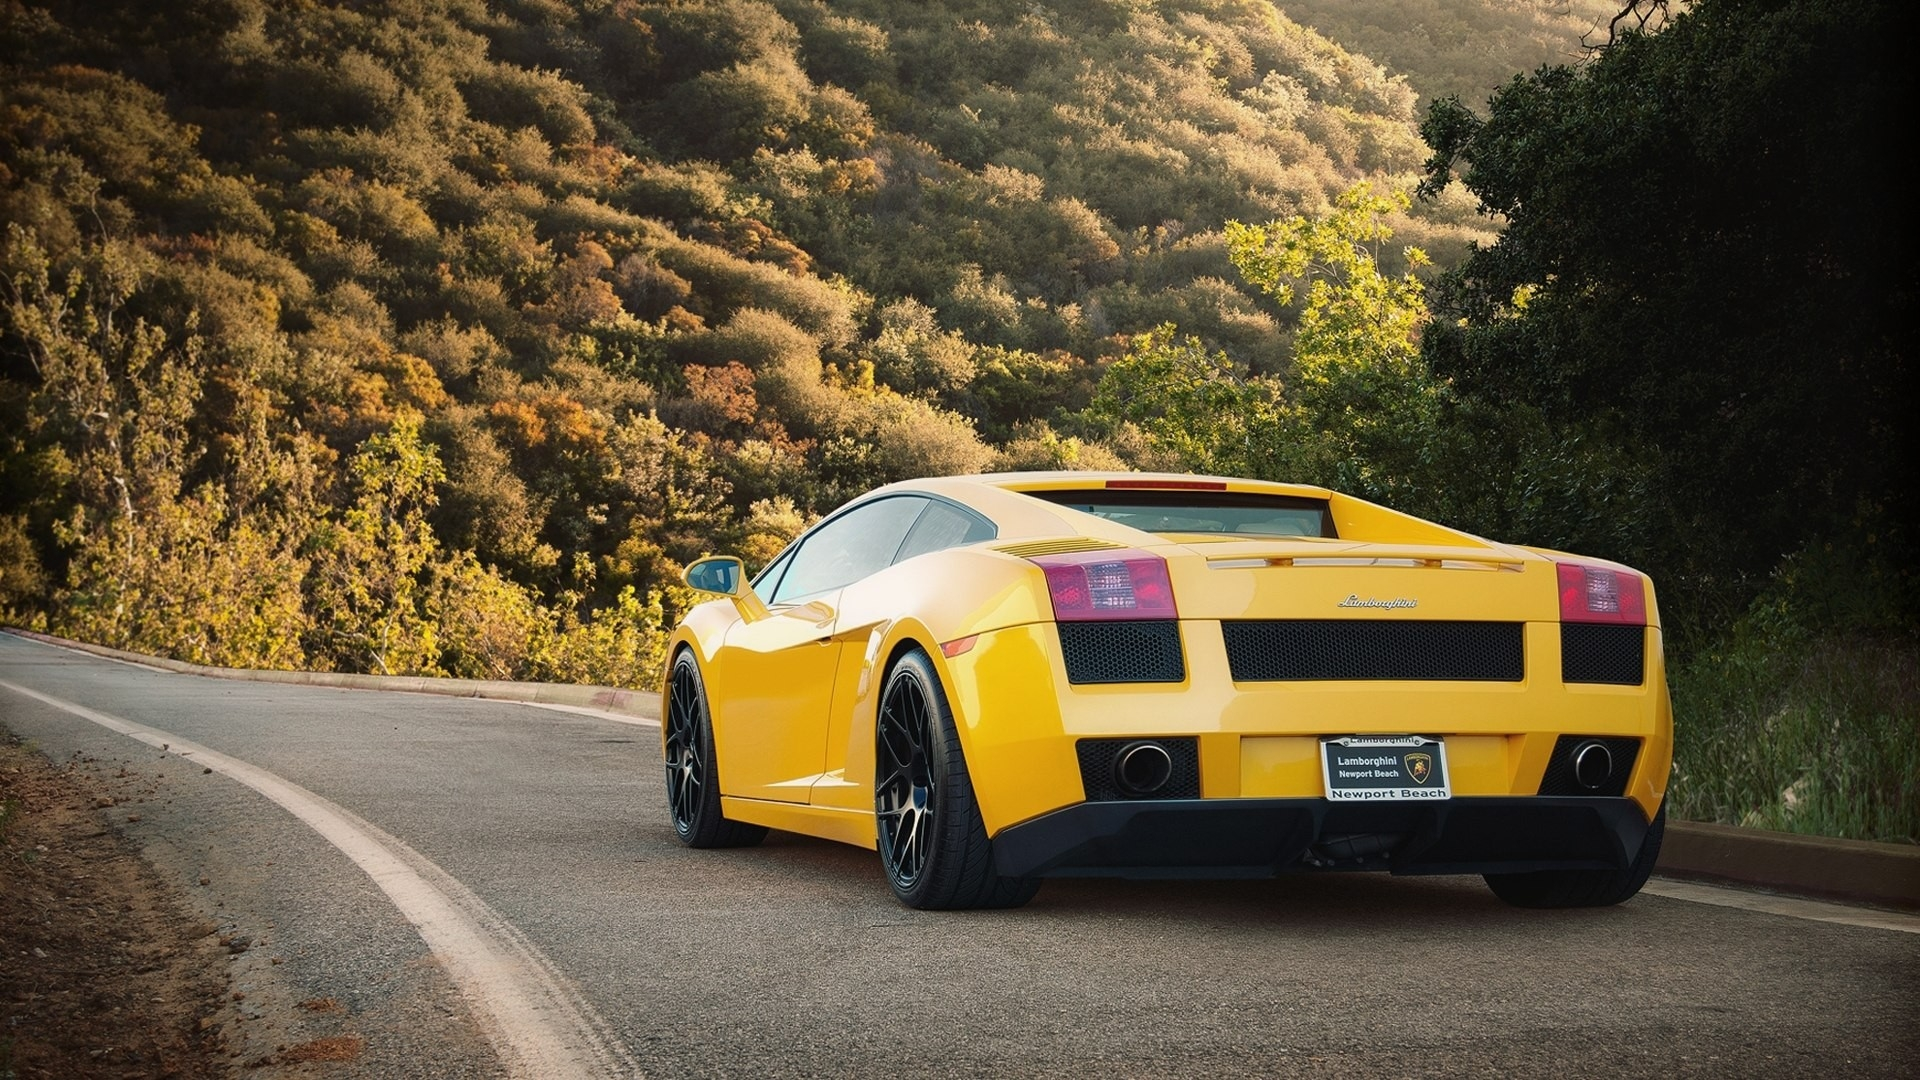 Images Of Yellow Lamborghini Wallpapers Spacehero